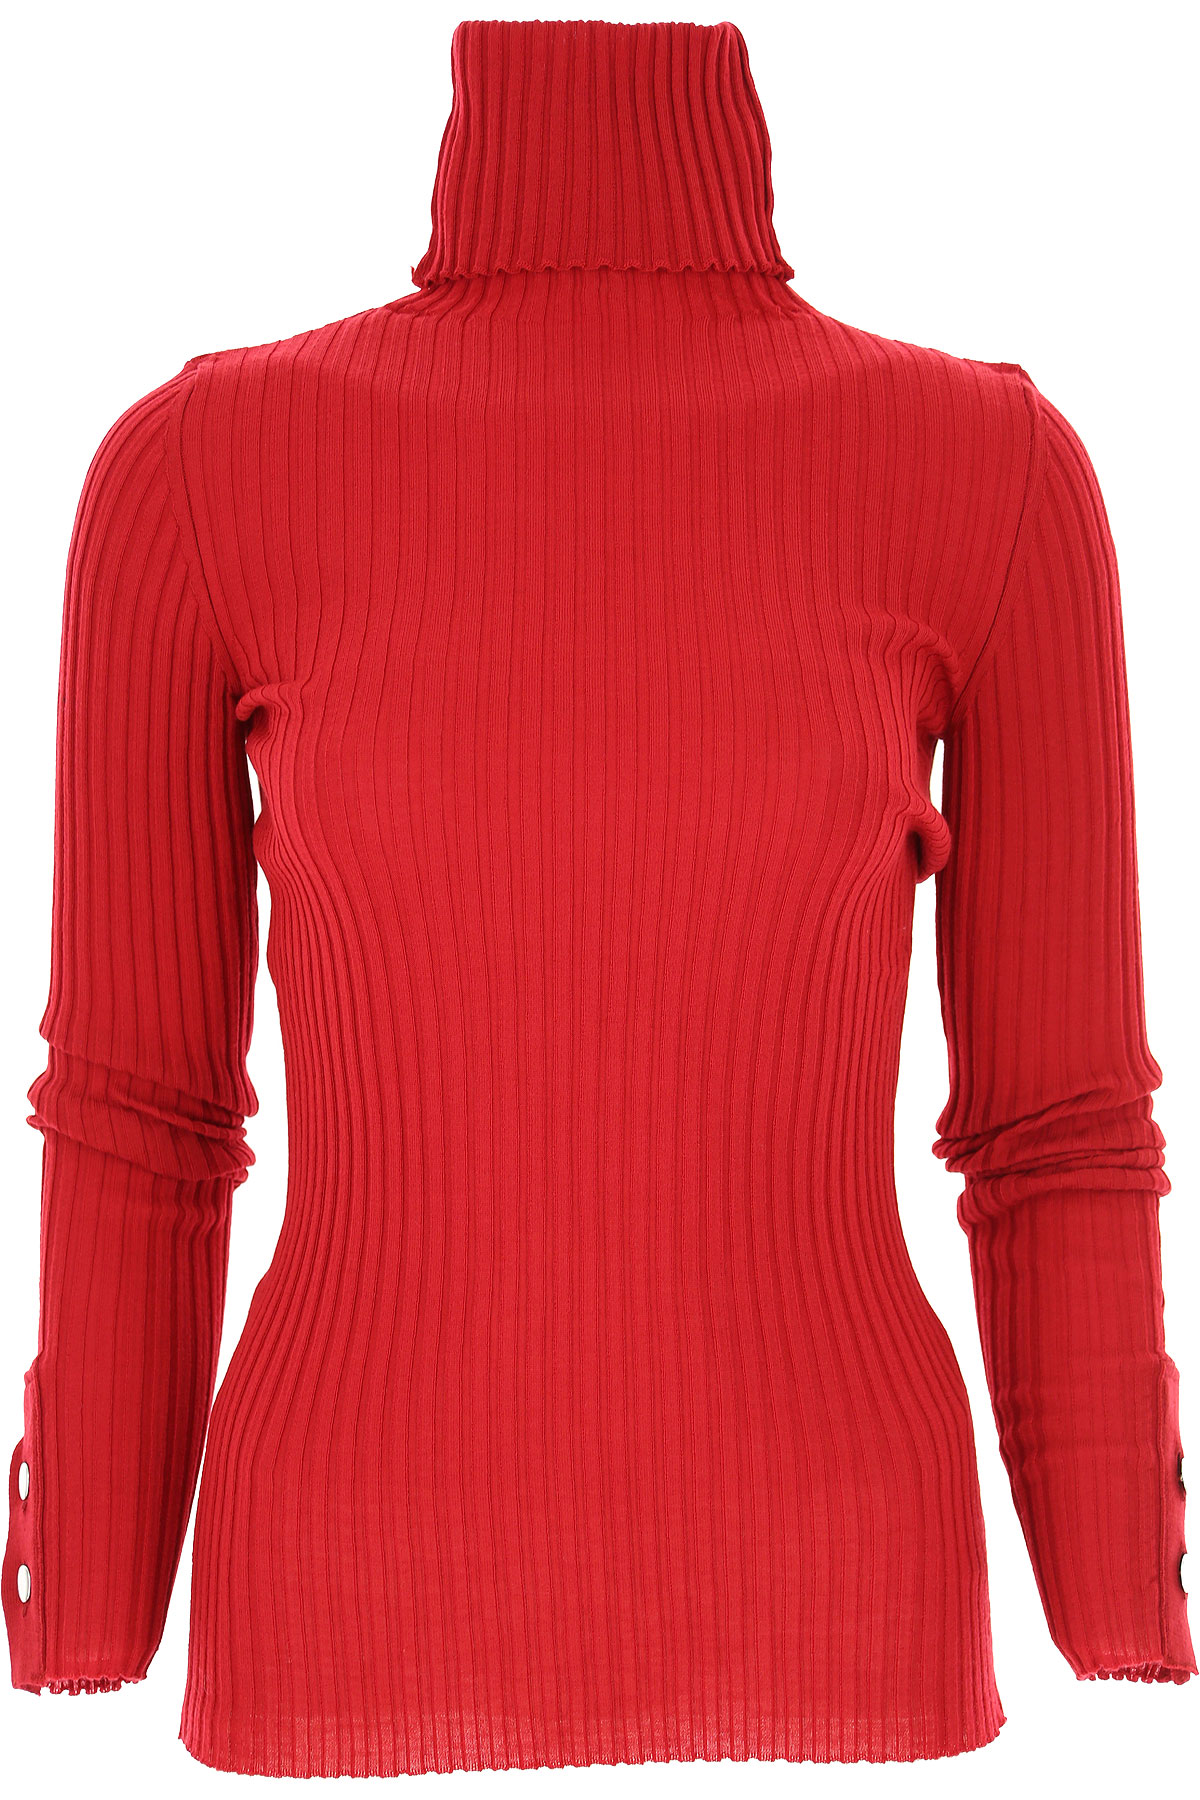 Liviana Conti Sweater for Women Jumper On Sale, Dark Red, Wool, 2019, 6 8